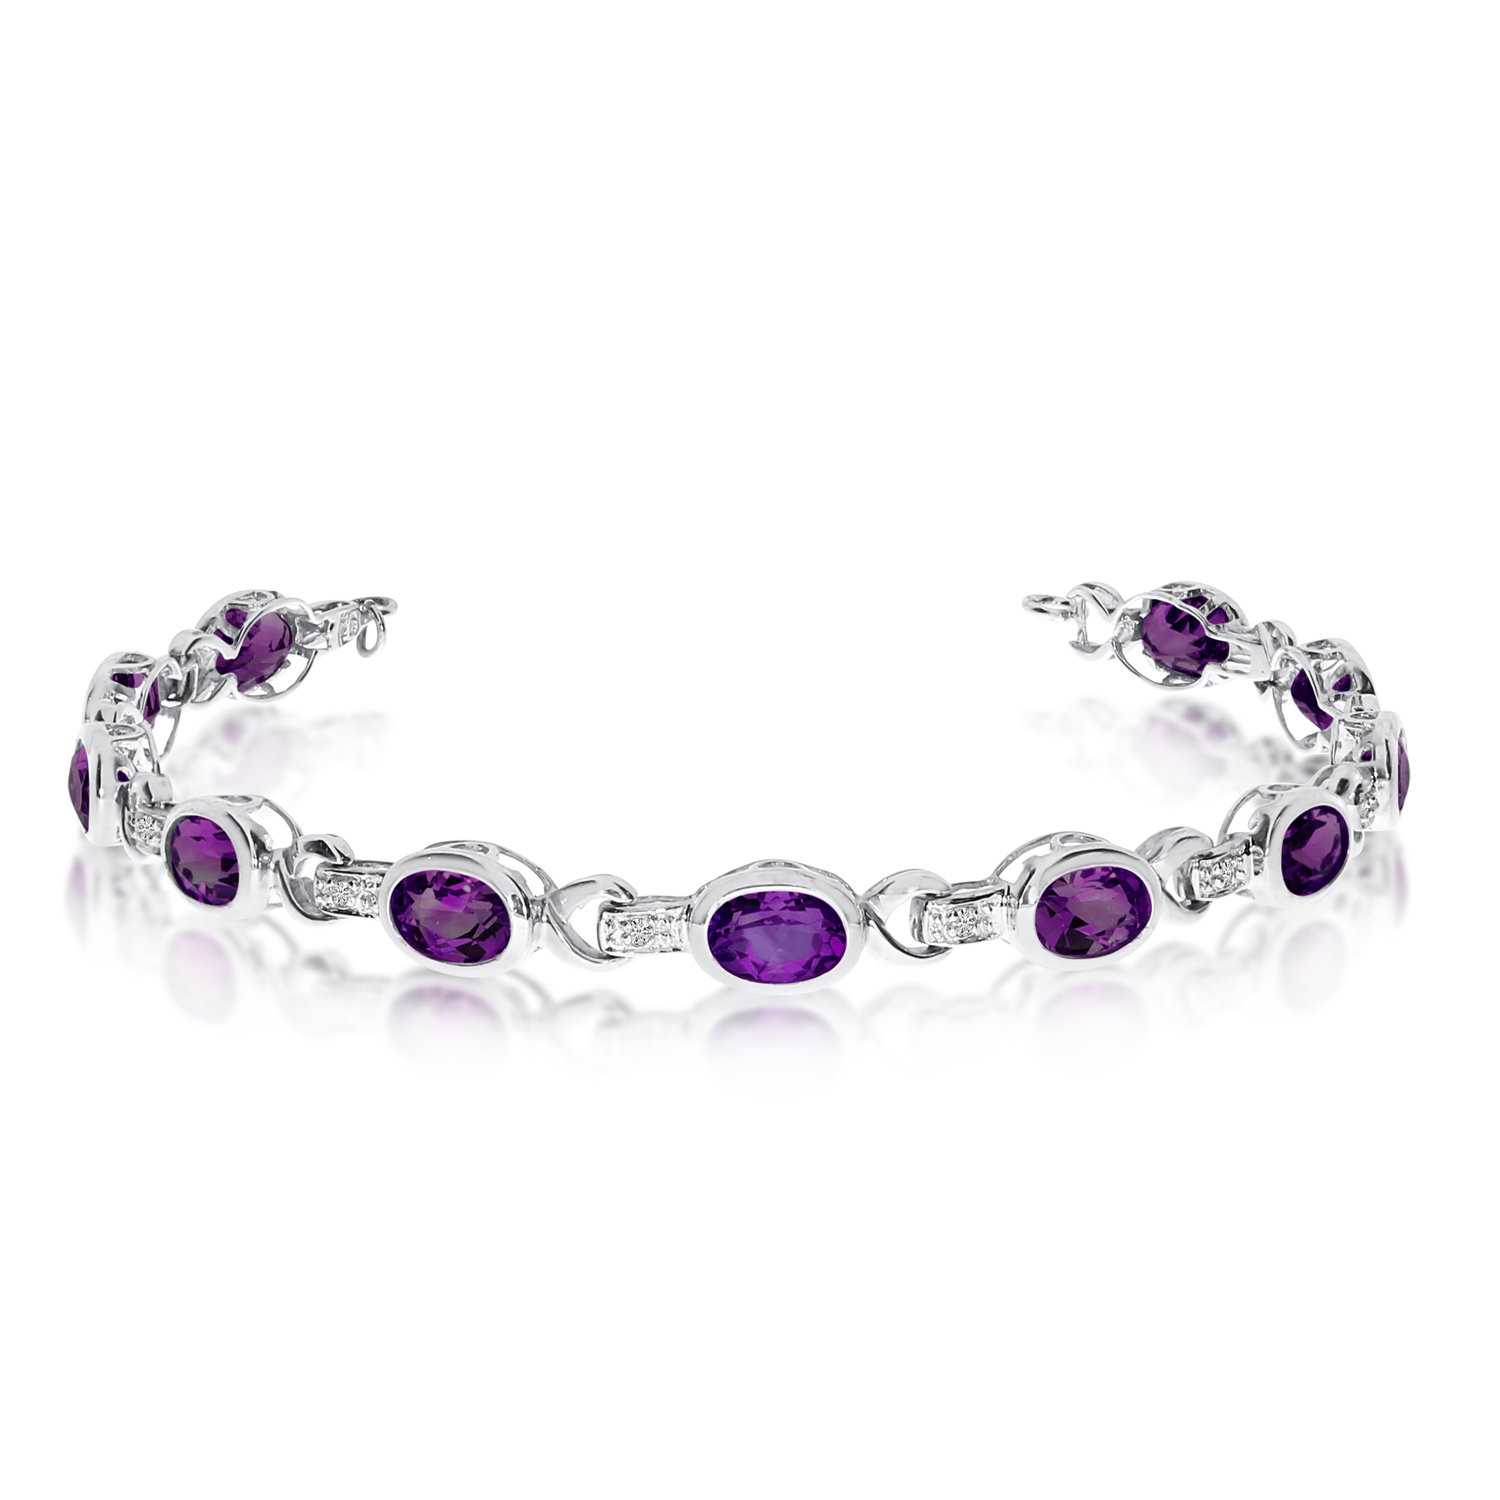 Oval Amethyst and Diamond Link Bracelet 14k White Gold (9.62ctw)